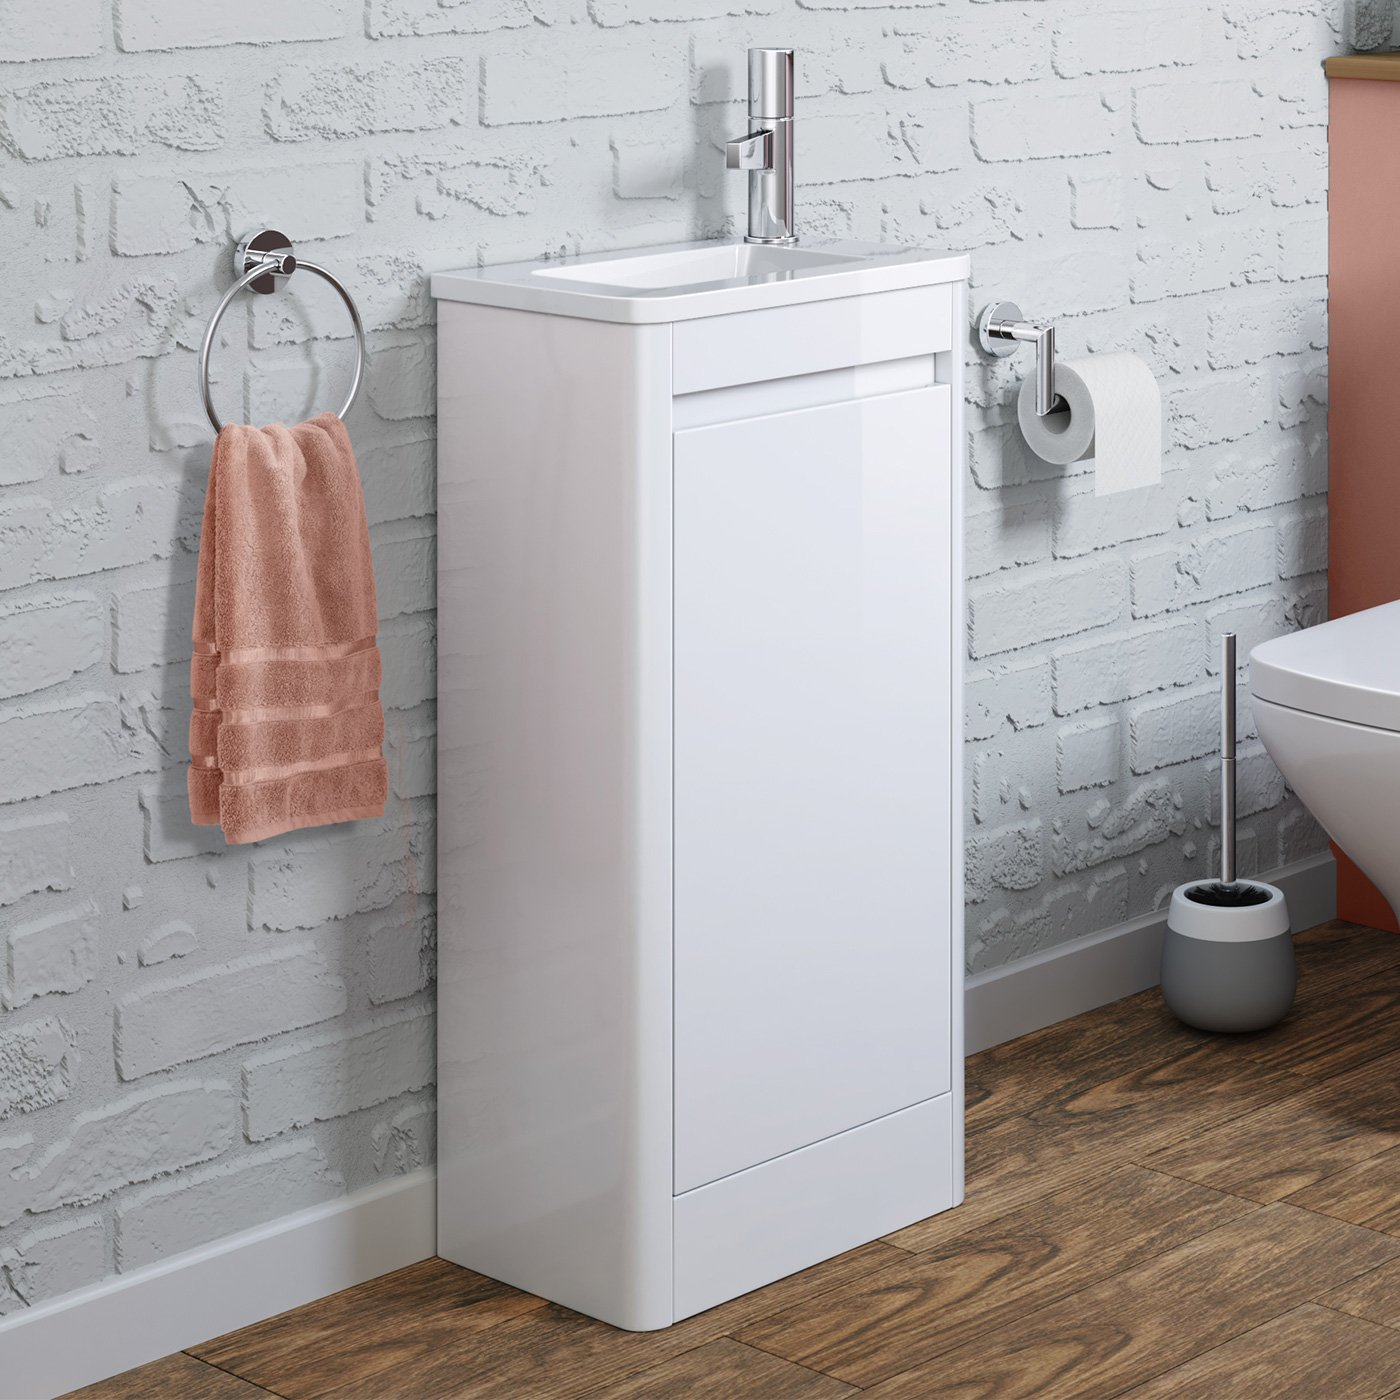 iBathUK Space Saving Gloss White Floor Standing Cloakroom Vanity Unit Right Hand Basin Sink Storage